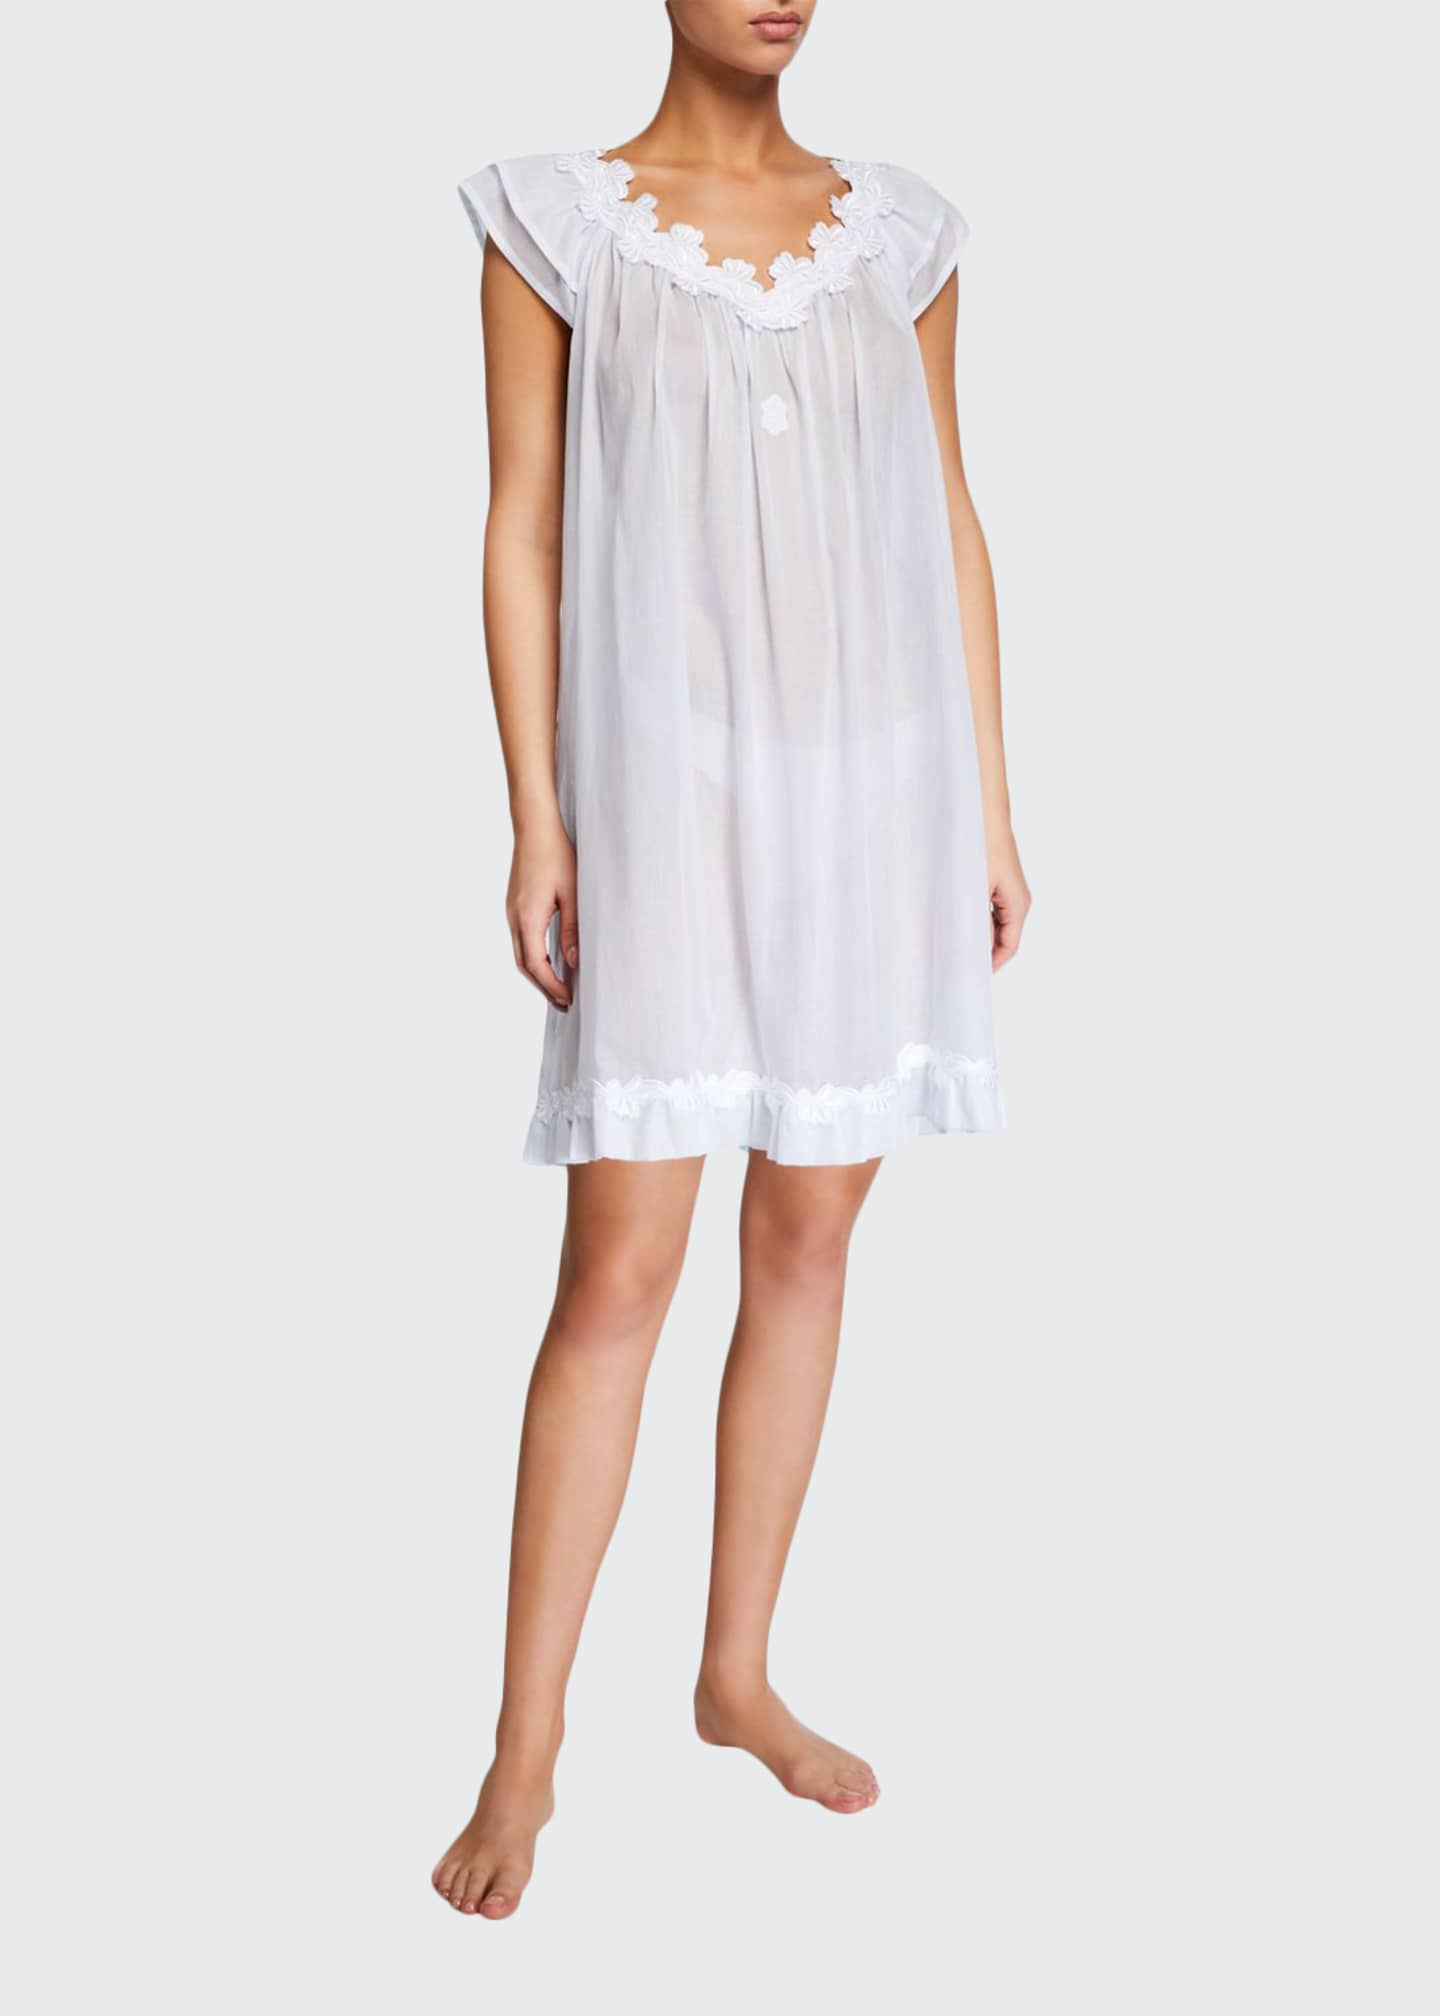 Celestine Palace Cap-Sleeve Poplin Nightgown